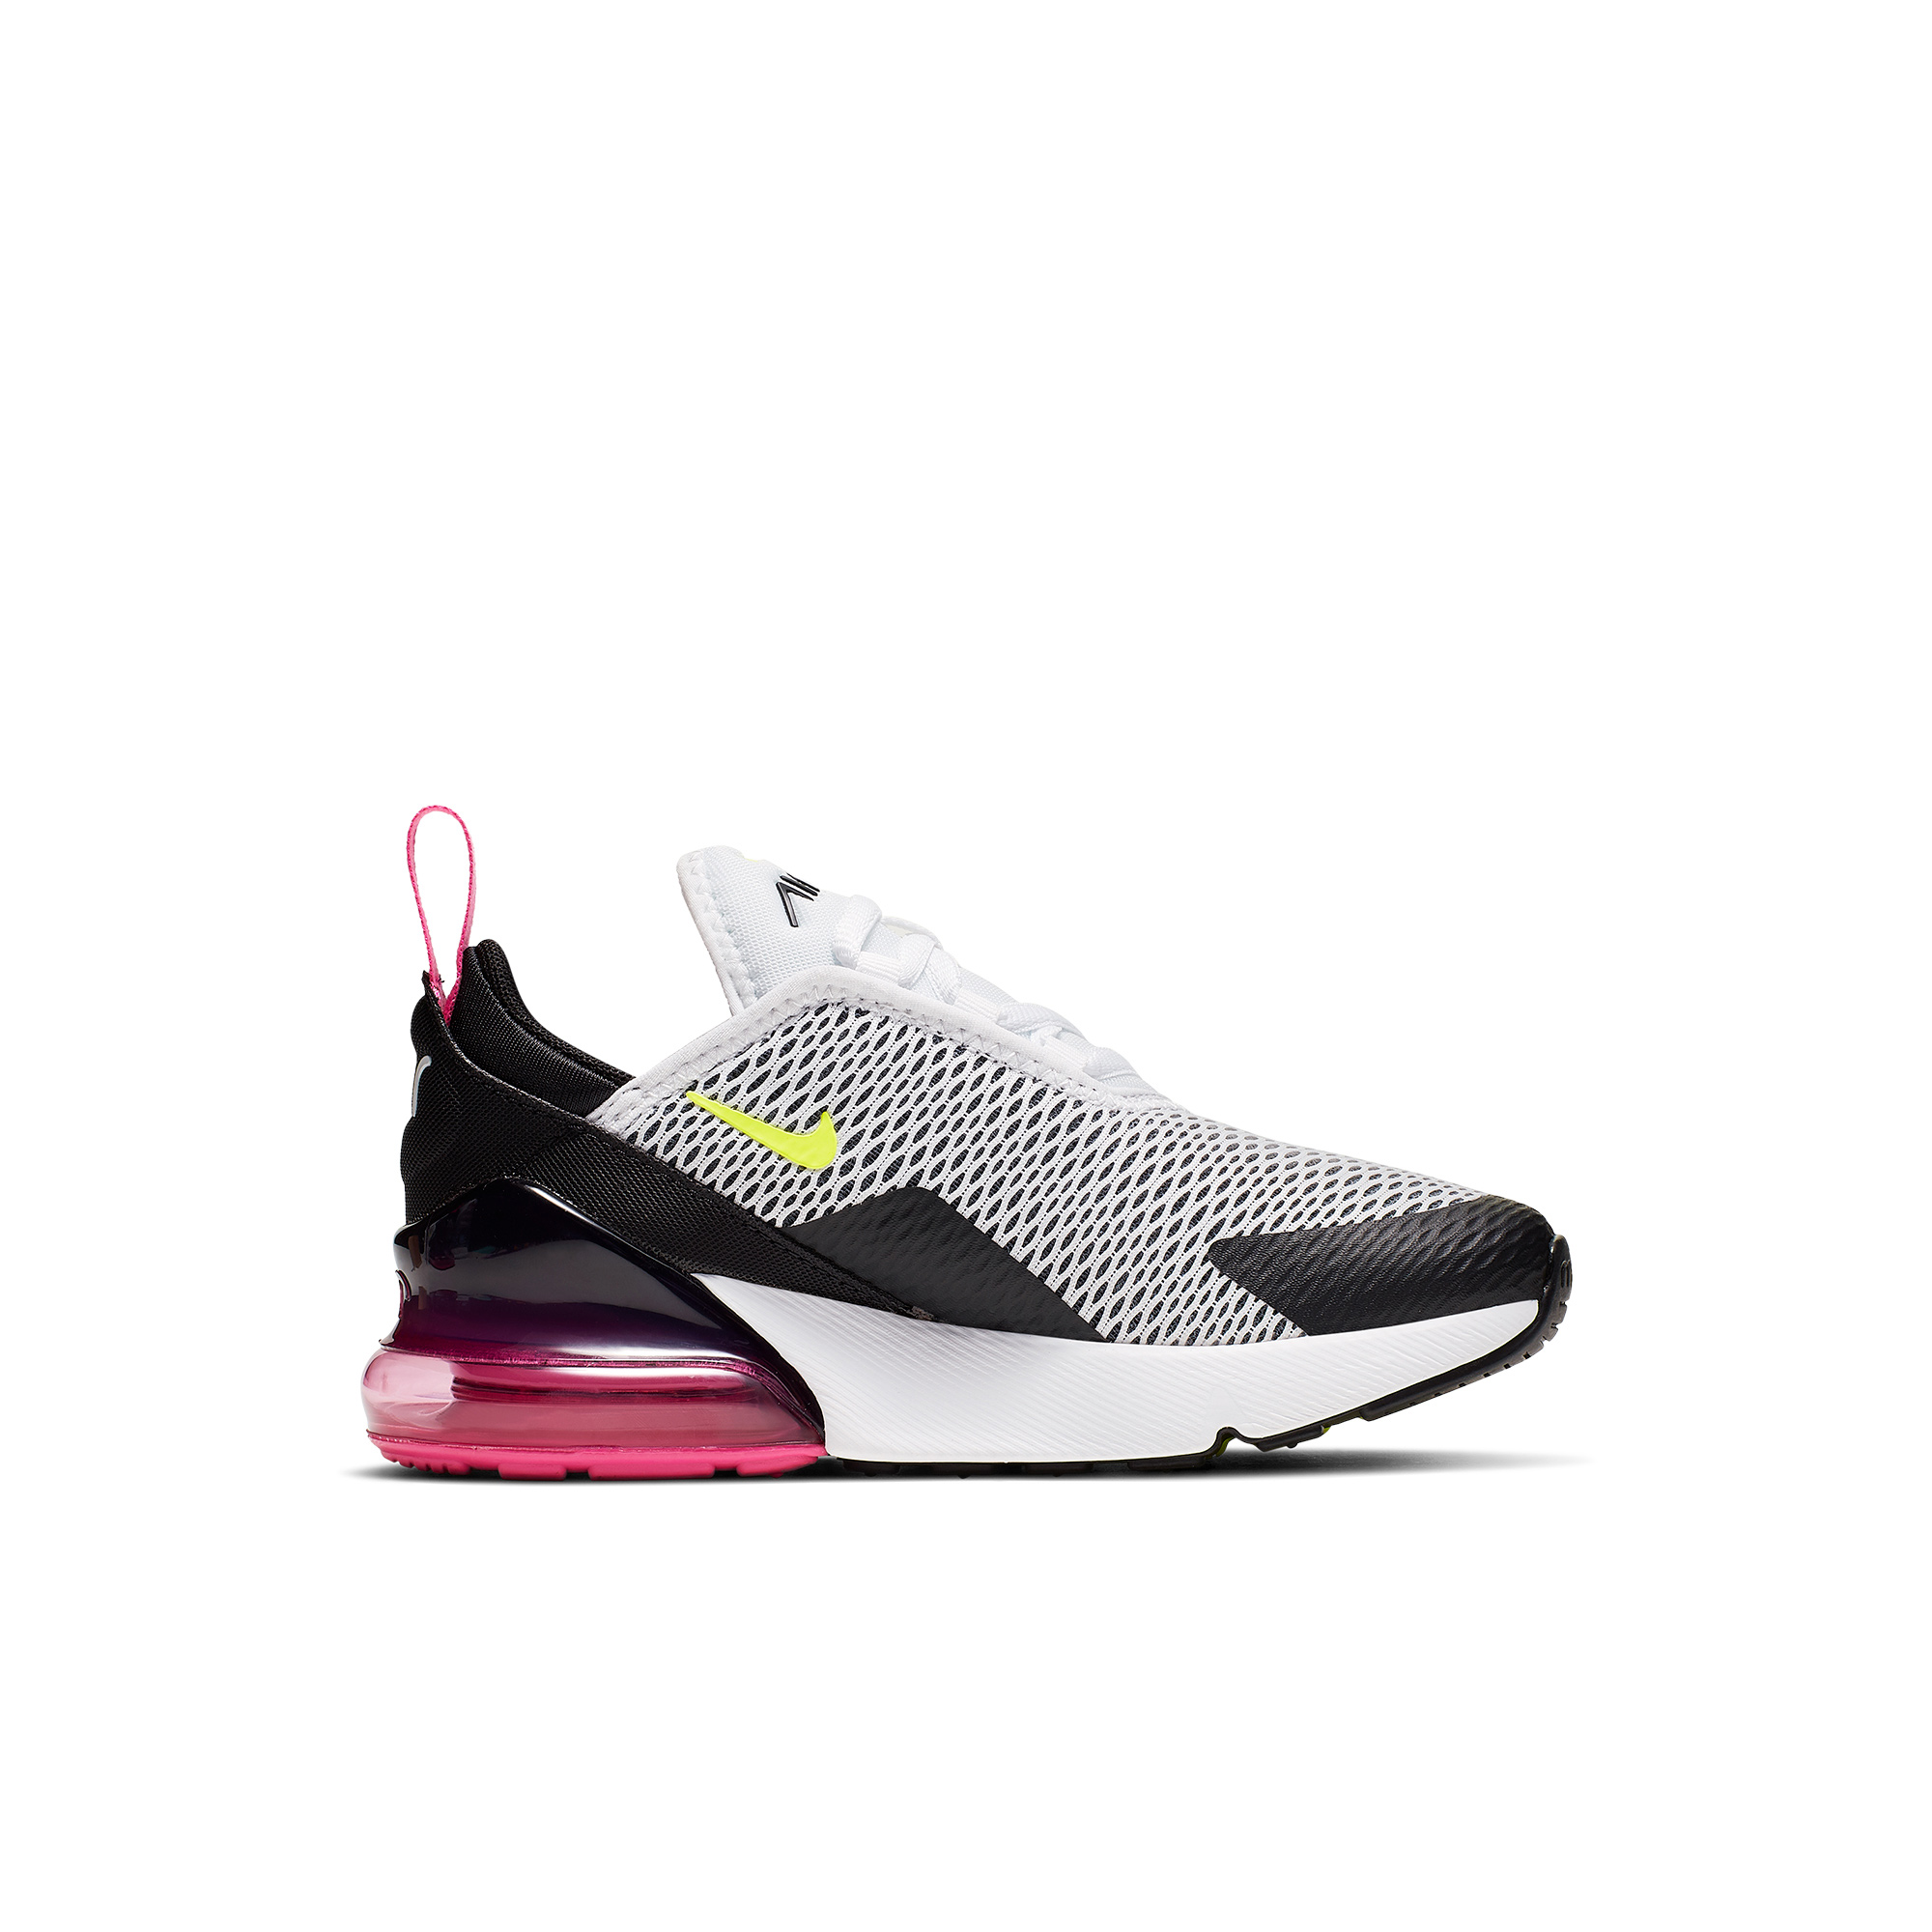 NIKE AIR MAX 270 enfants Original enfants chaussures de course Sports confortables en plein AIR maille baskets #943345 - 6